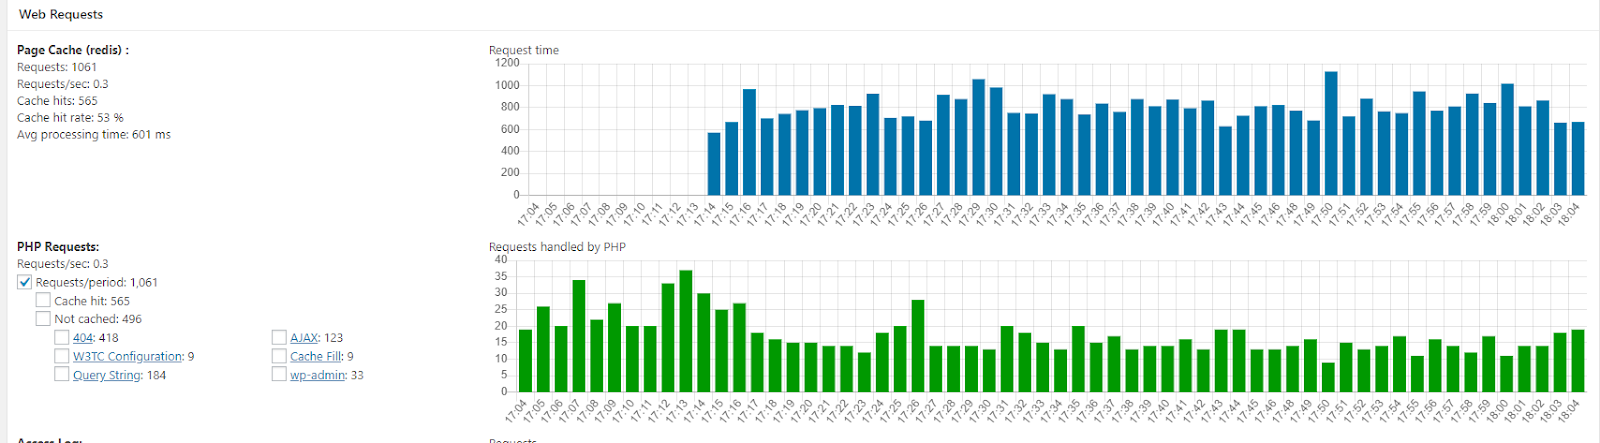 A screenshot of the Page Cache and PHP Requests statistics charts.